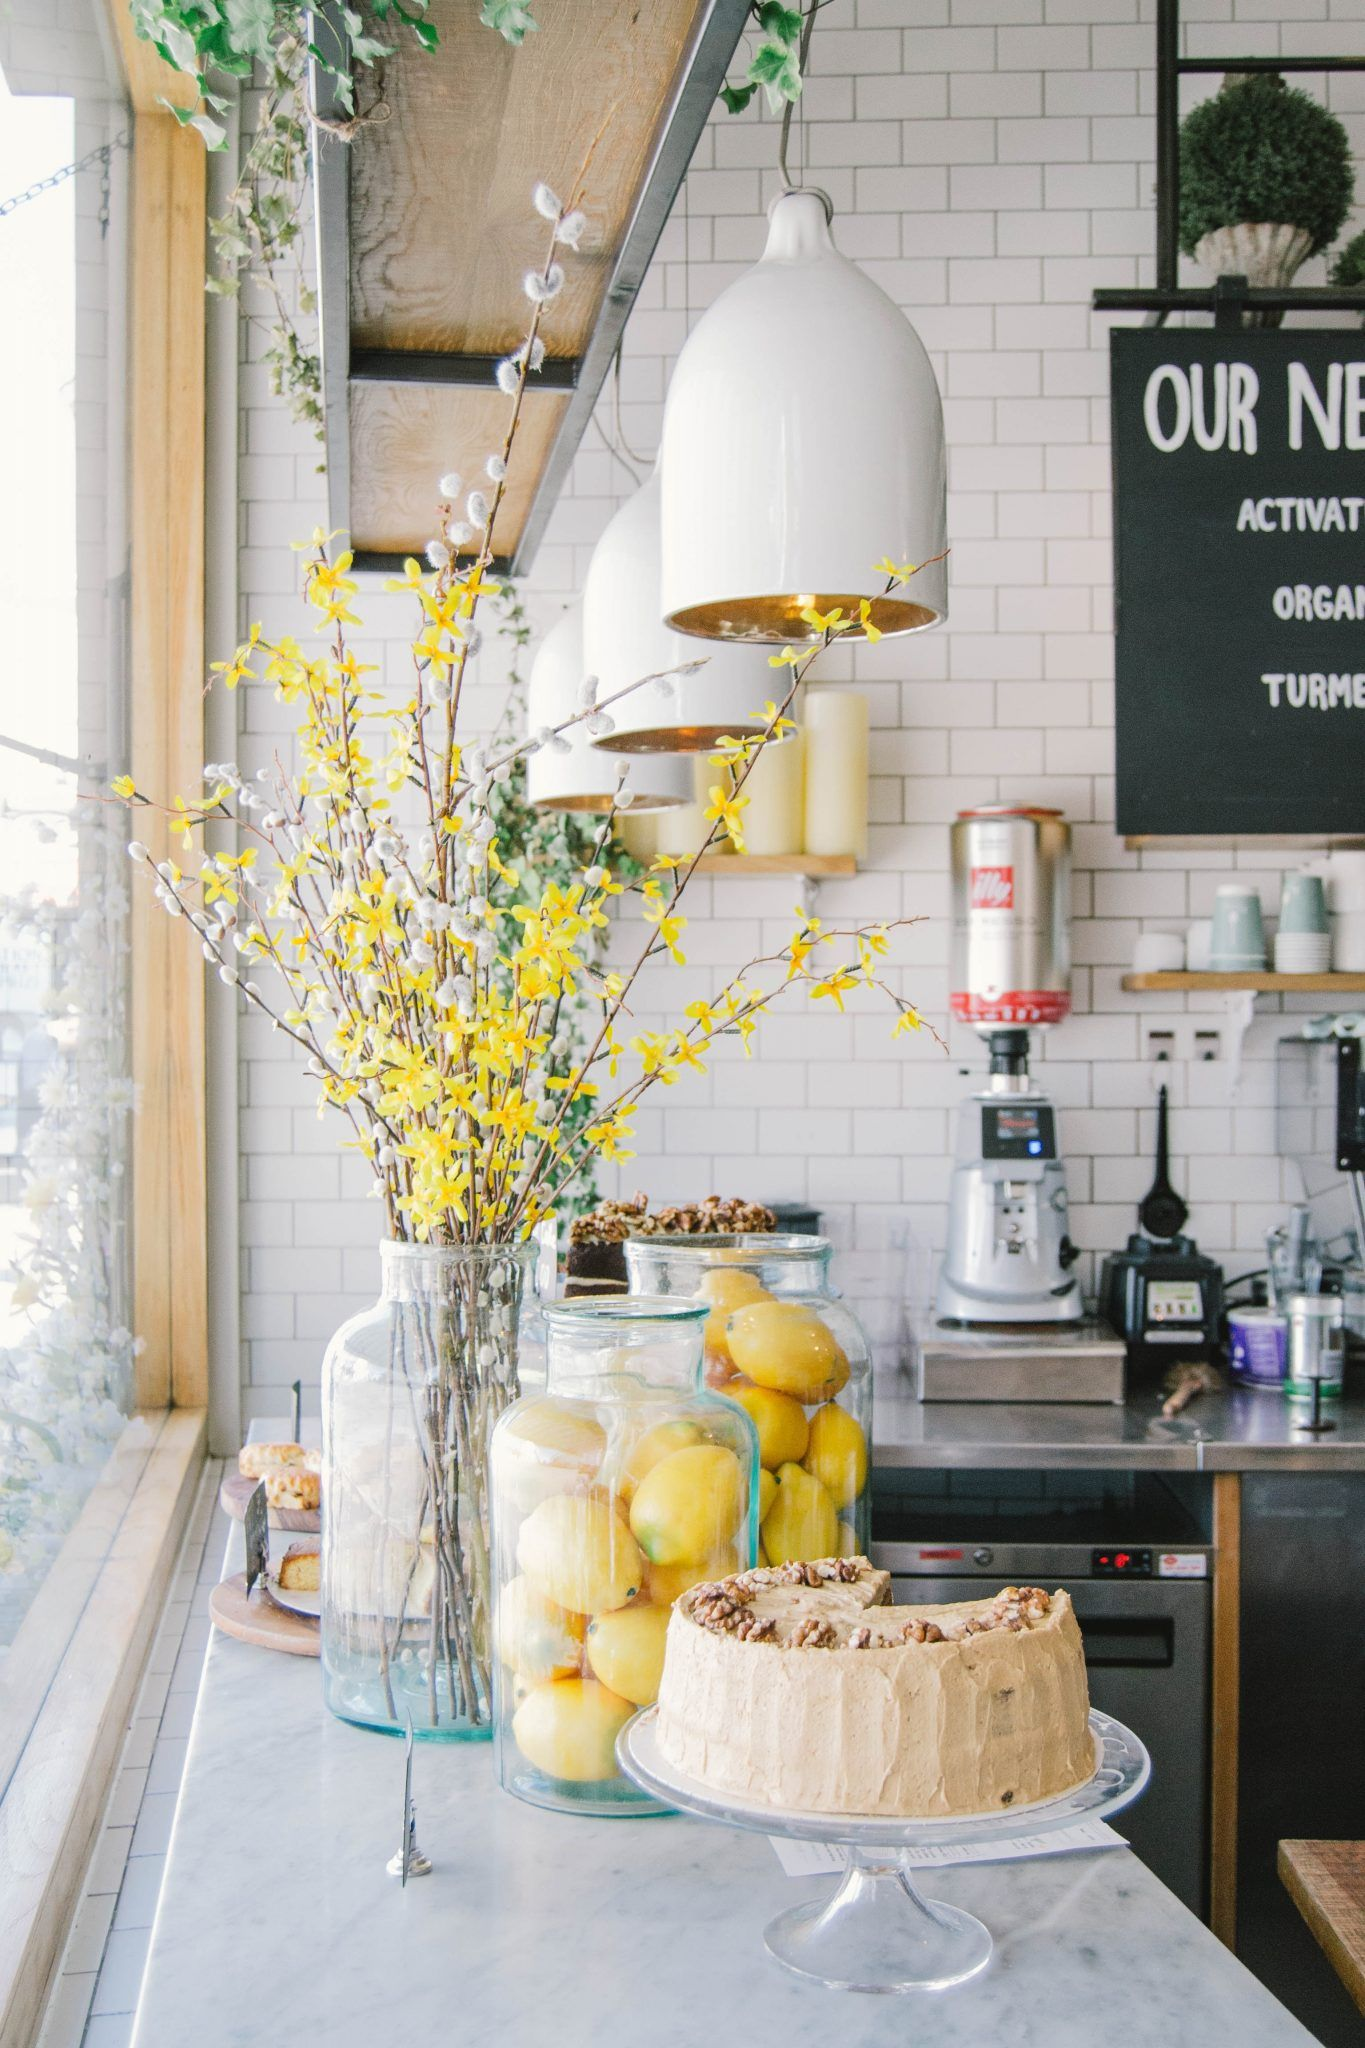 23 Impressive Kitchen Counter Decor Ideas For Styling Your Kitchen Counter Decor Lemon Kitchen Decor Kitchen Counter Decor